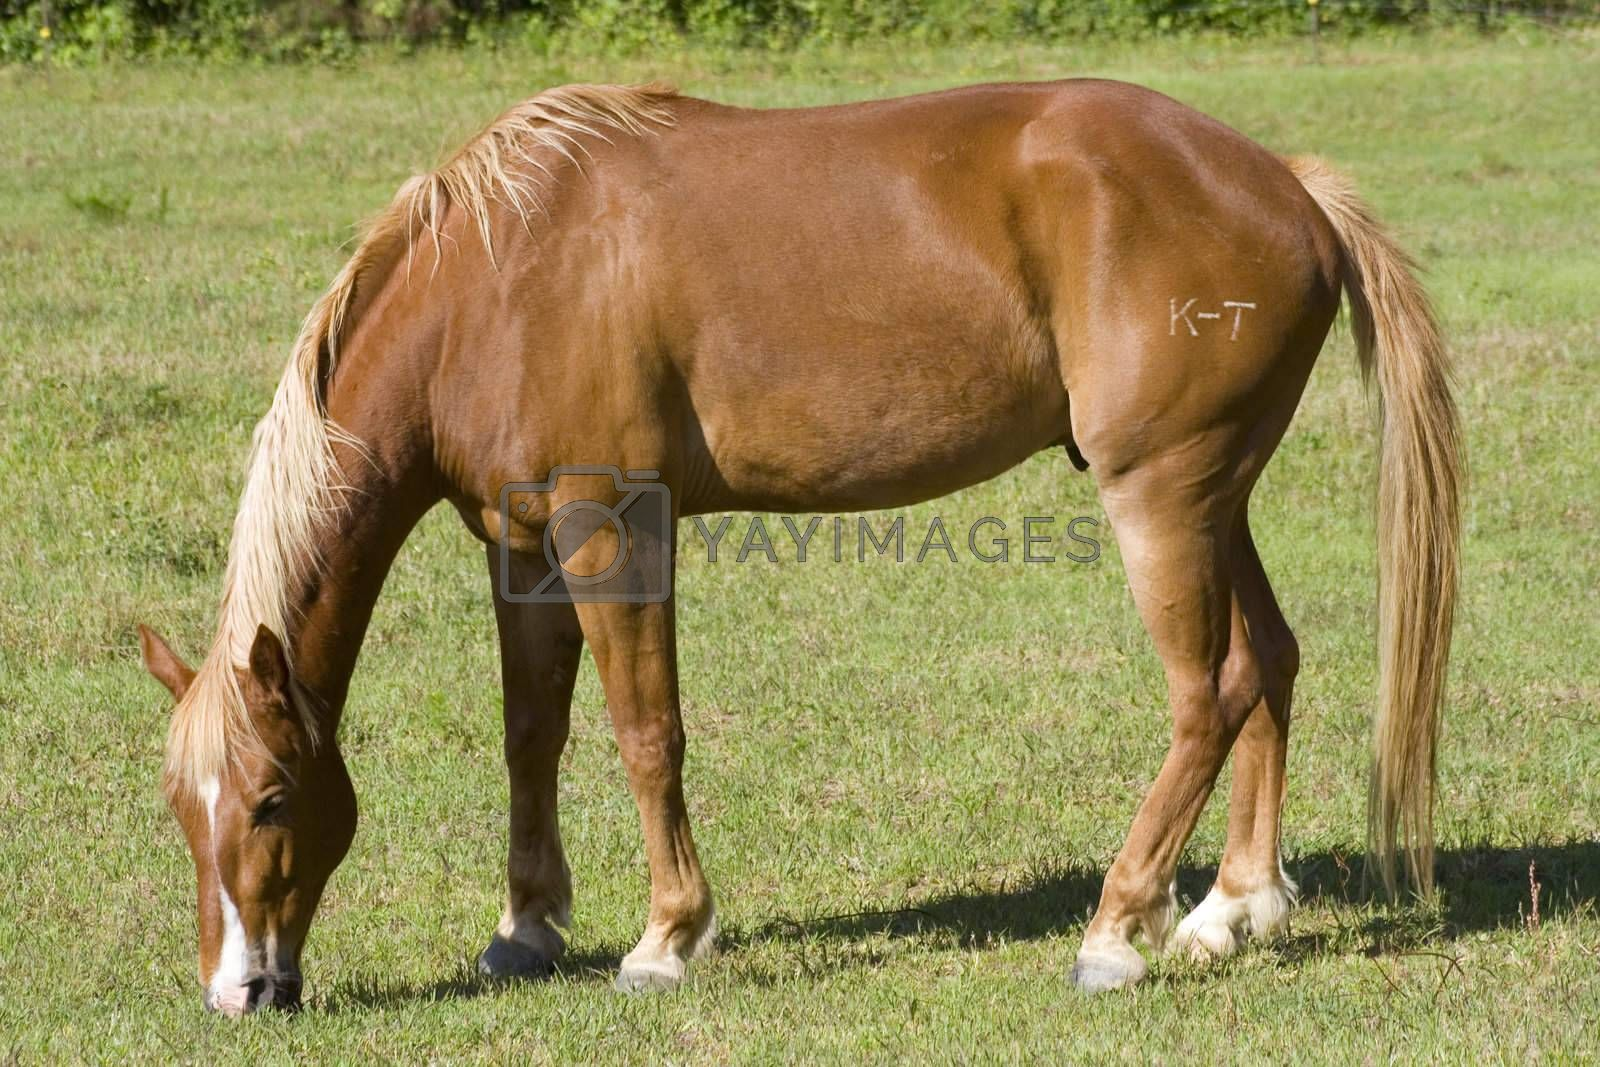 A horse grazing in an open pasture.